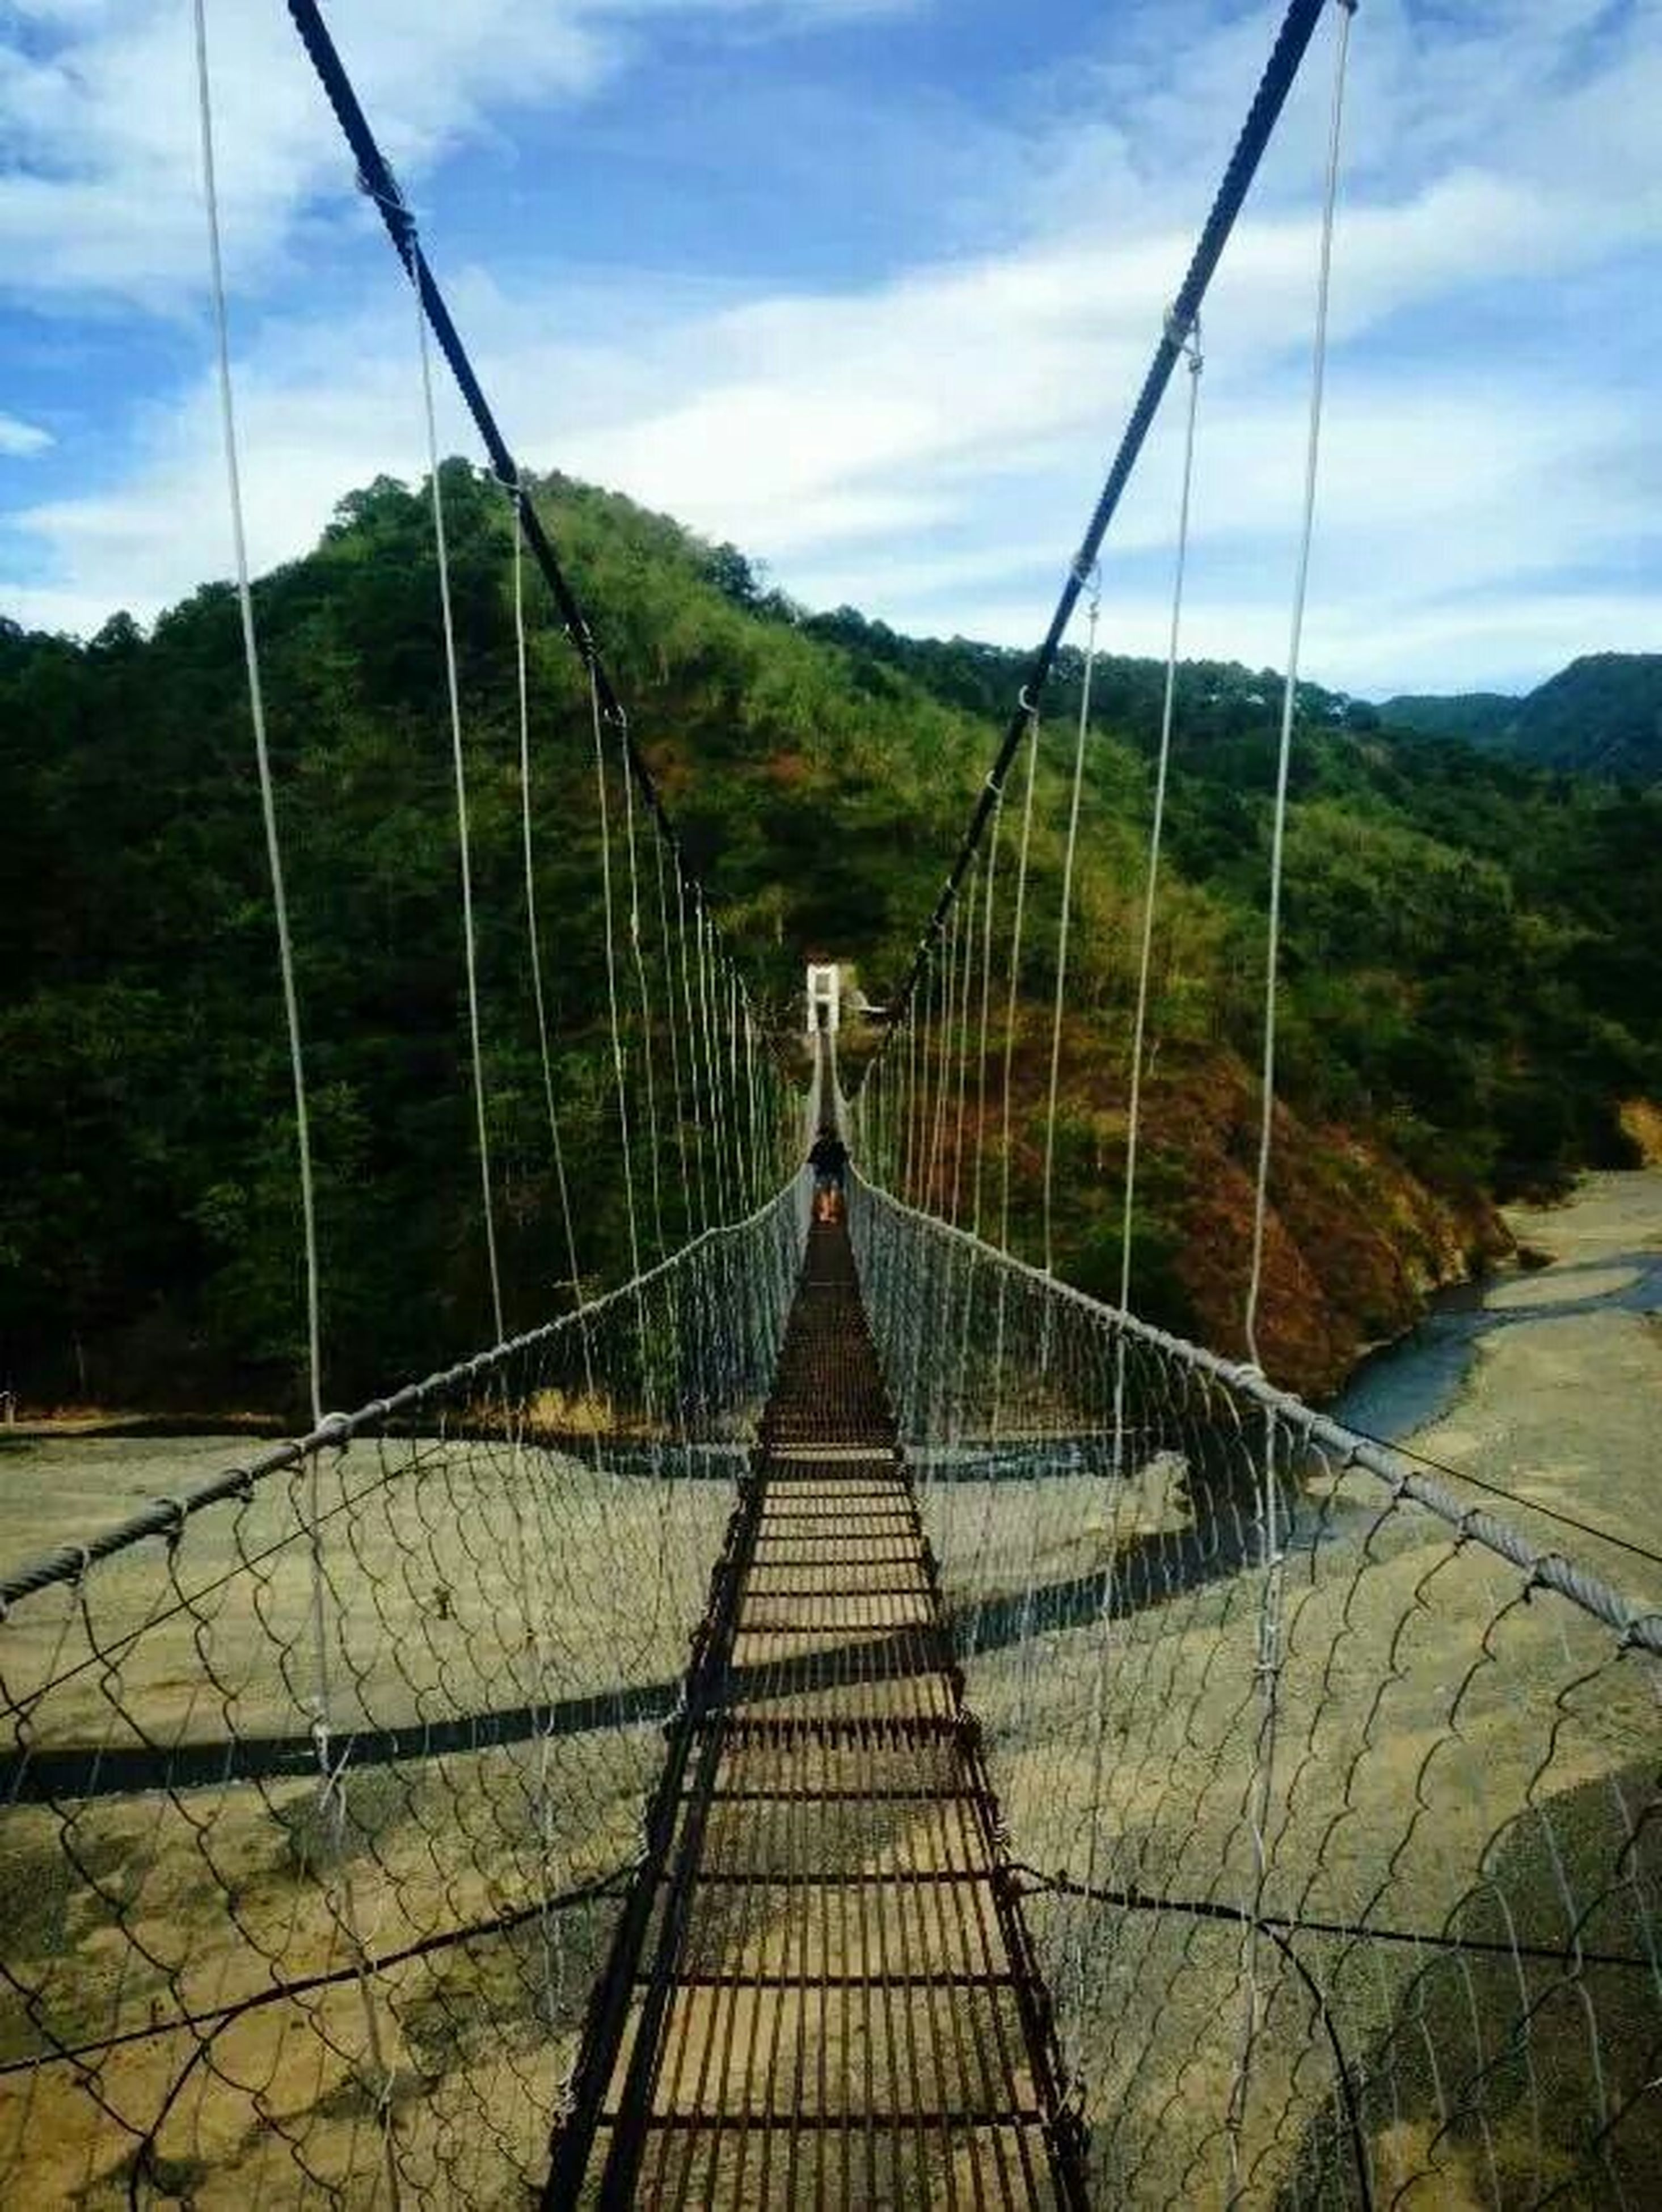 the way forward, sky, connection, railing, diminishing perspective, cloud - sky, mountain, bridge - man made structure, vanishing point, cloud, transportation, tree, footbridge, tranquility, tranquil scene, day, nature, cloudy, outdoors, metal